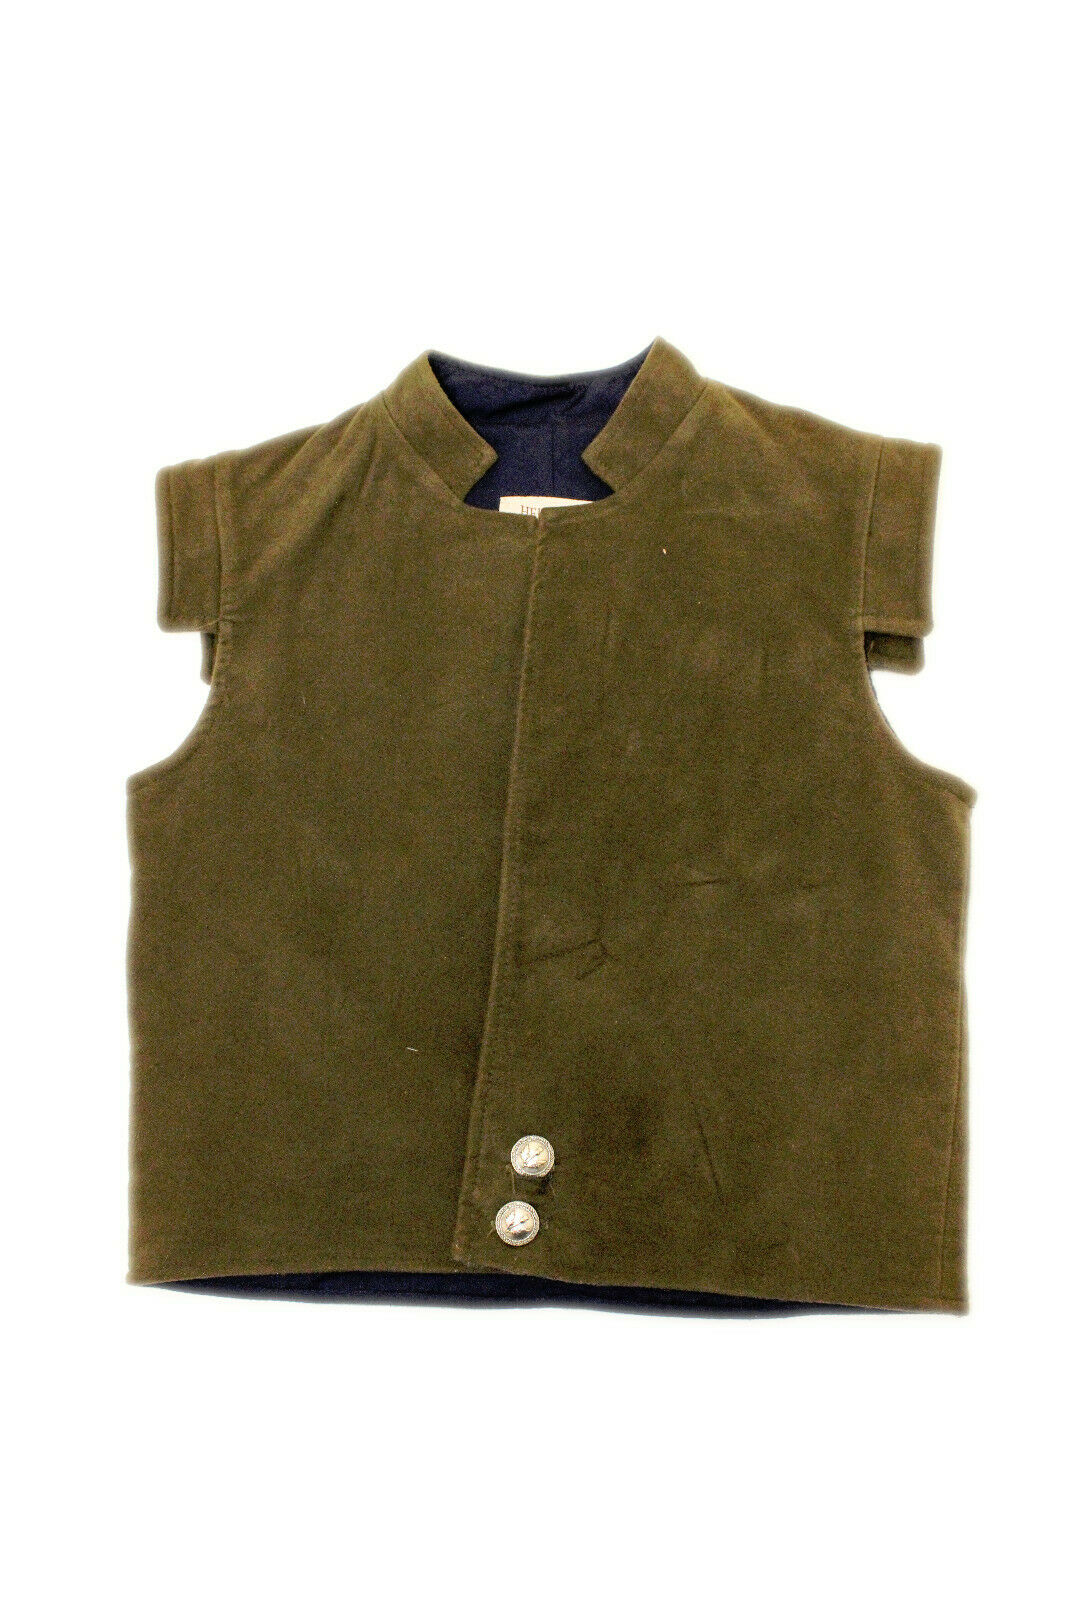 Exhire OLIVE GREEN LOWLANDER Vest - reduced to clear